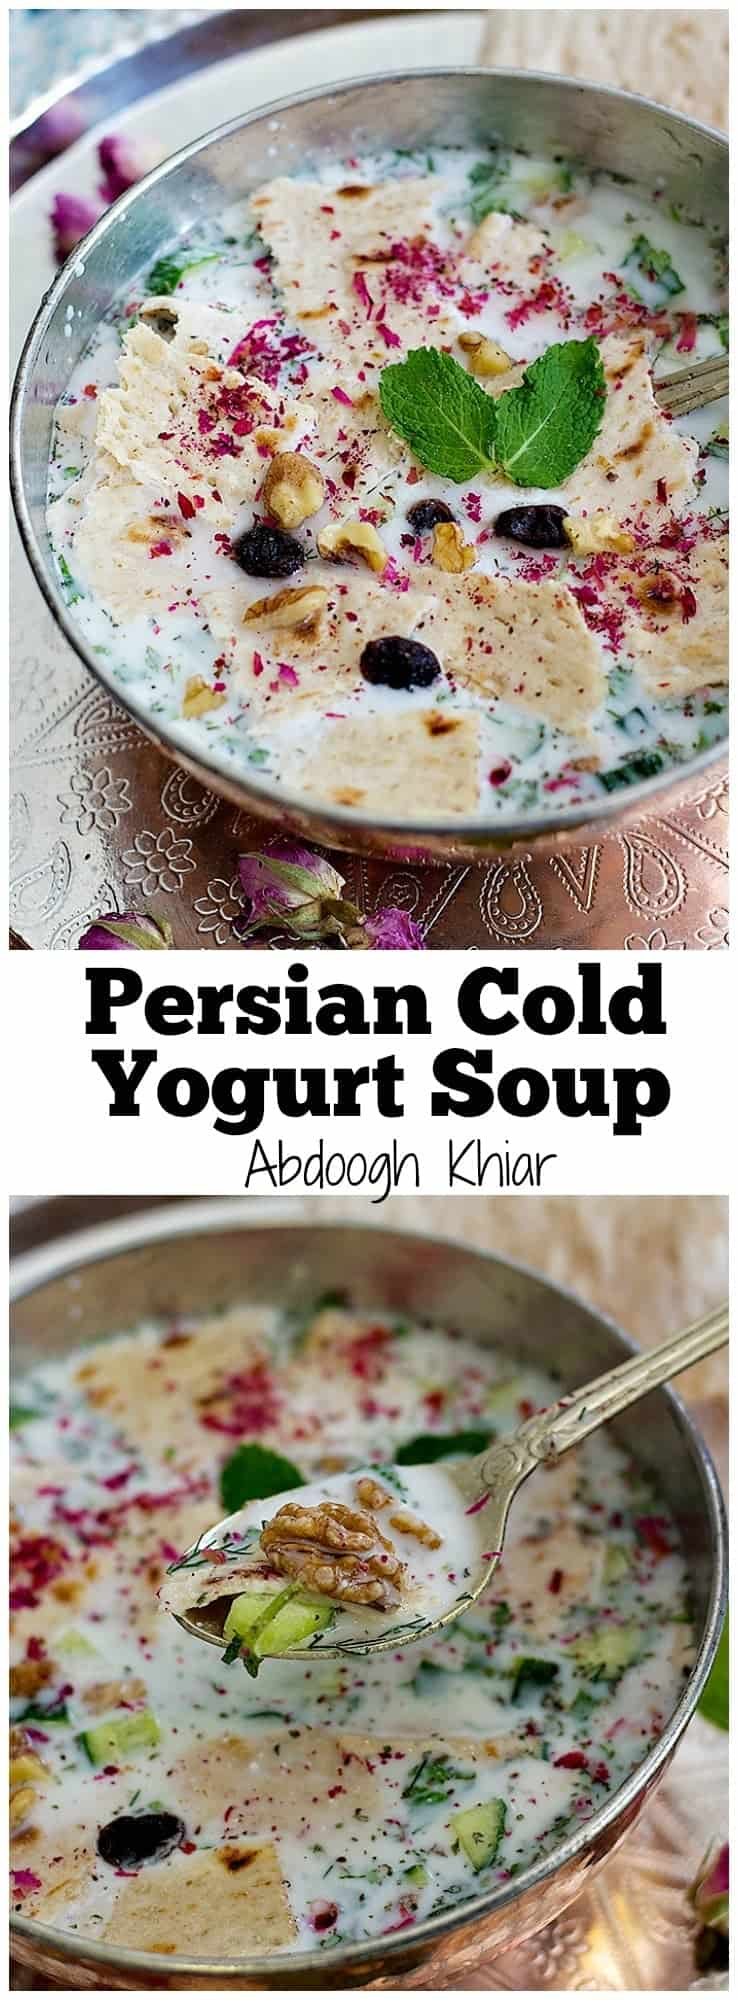 Stay cool this summer with this Persian Cold Yogurt Soup - Abdoogh Khiar. This tasty yogurt soup is made with simple, natural and healthy ingredients.